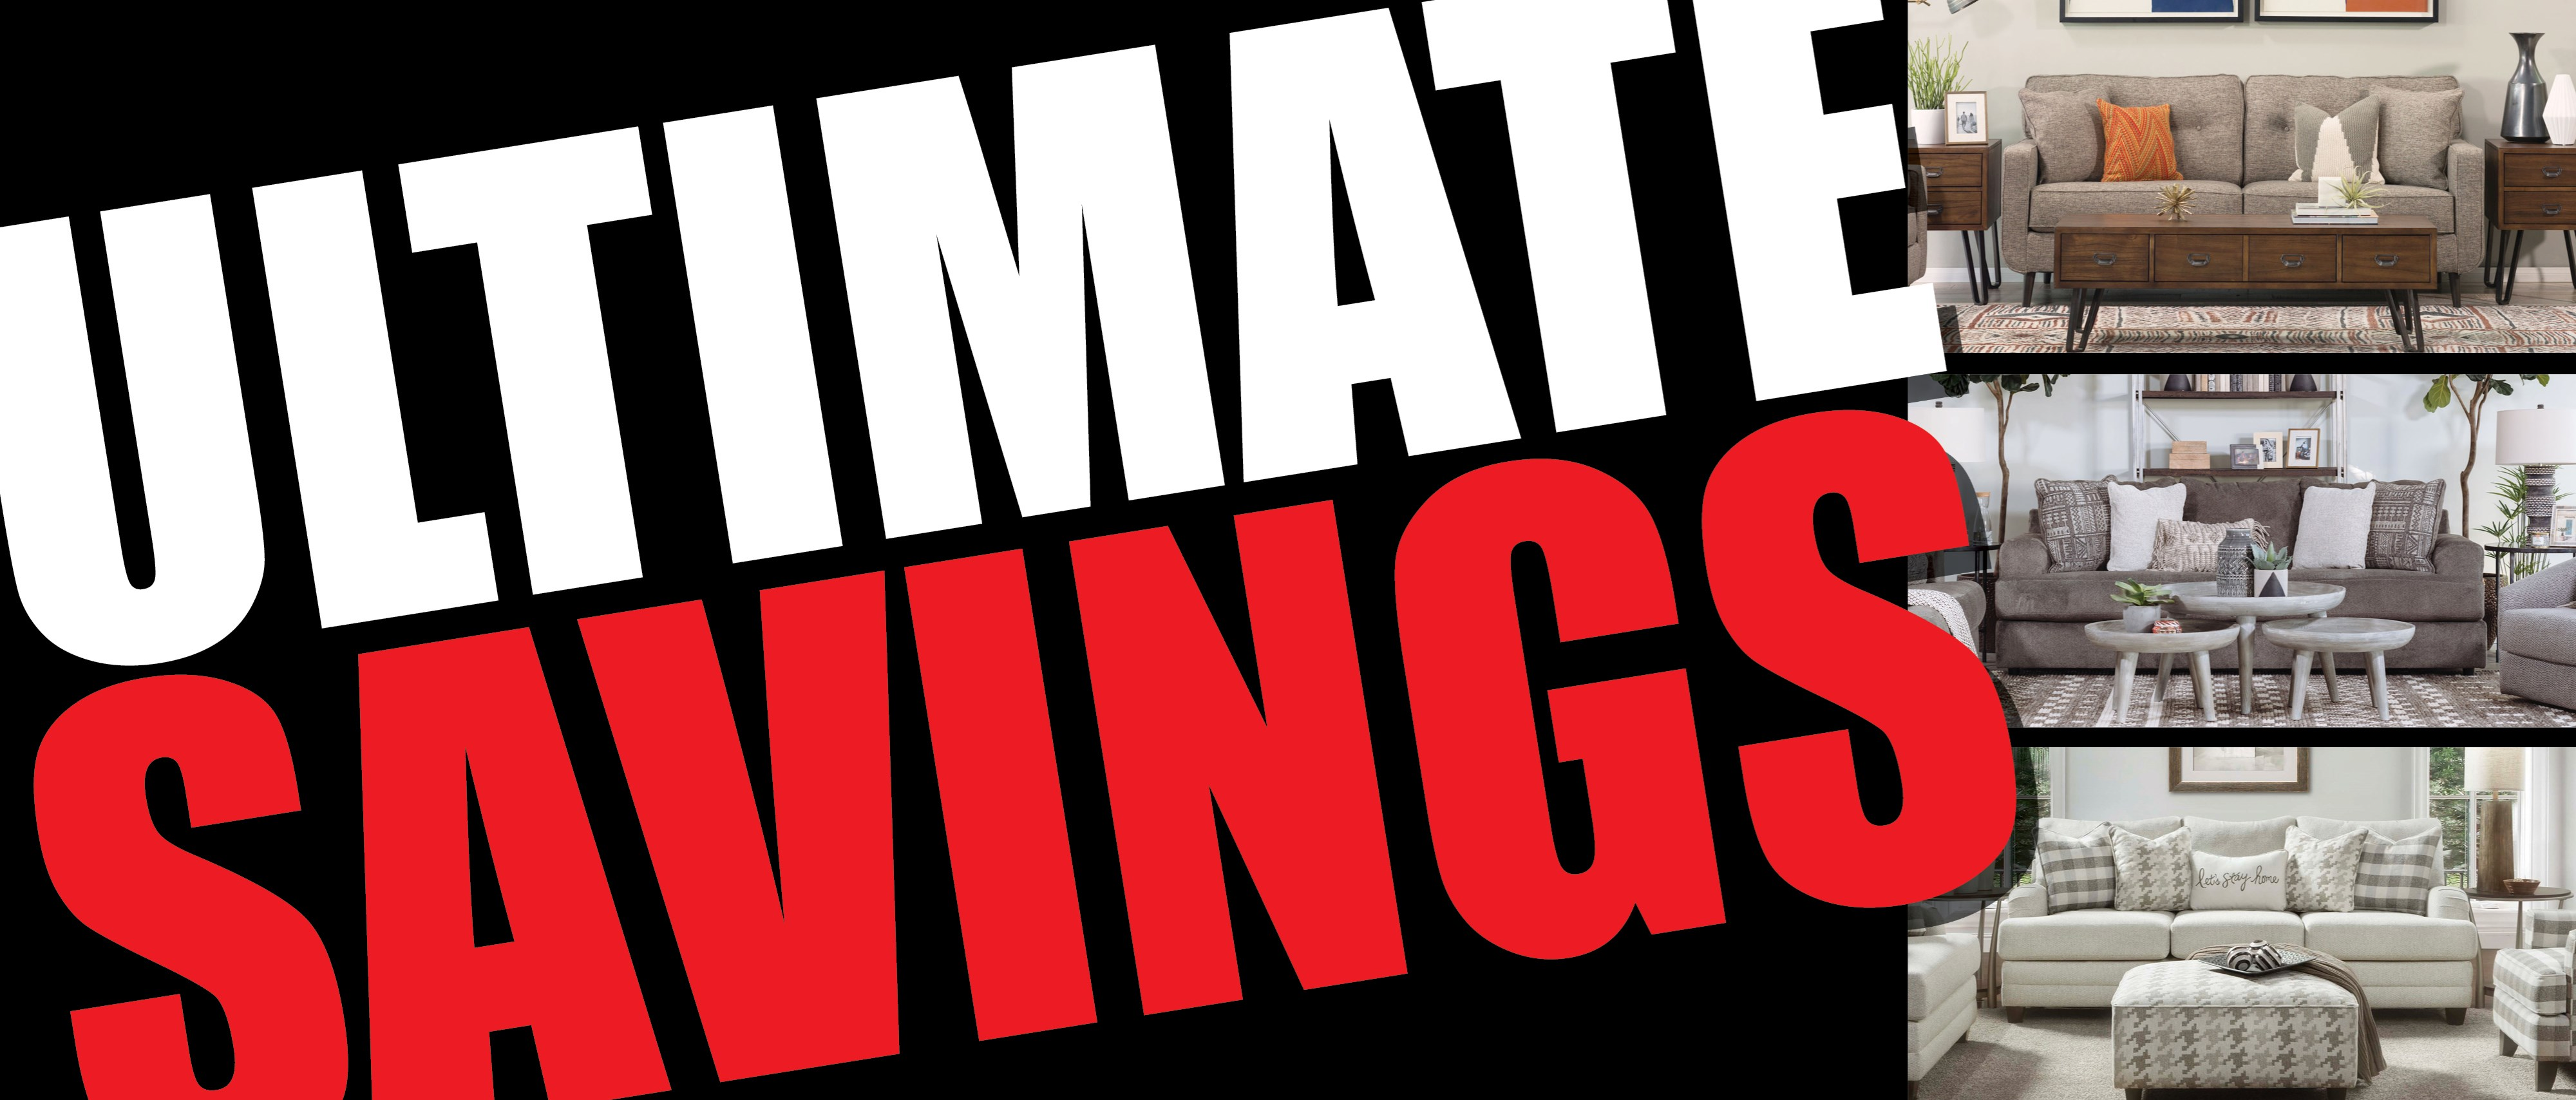 Ultimate Savings are going on now!